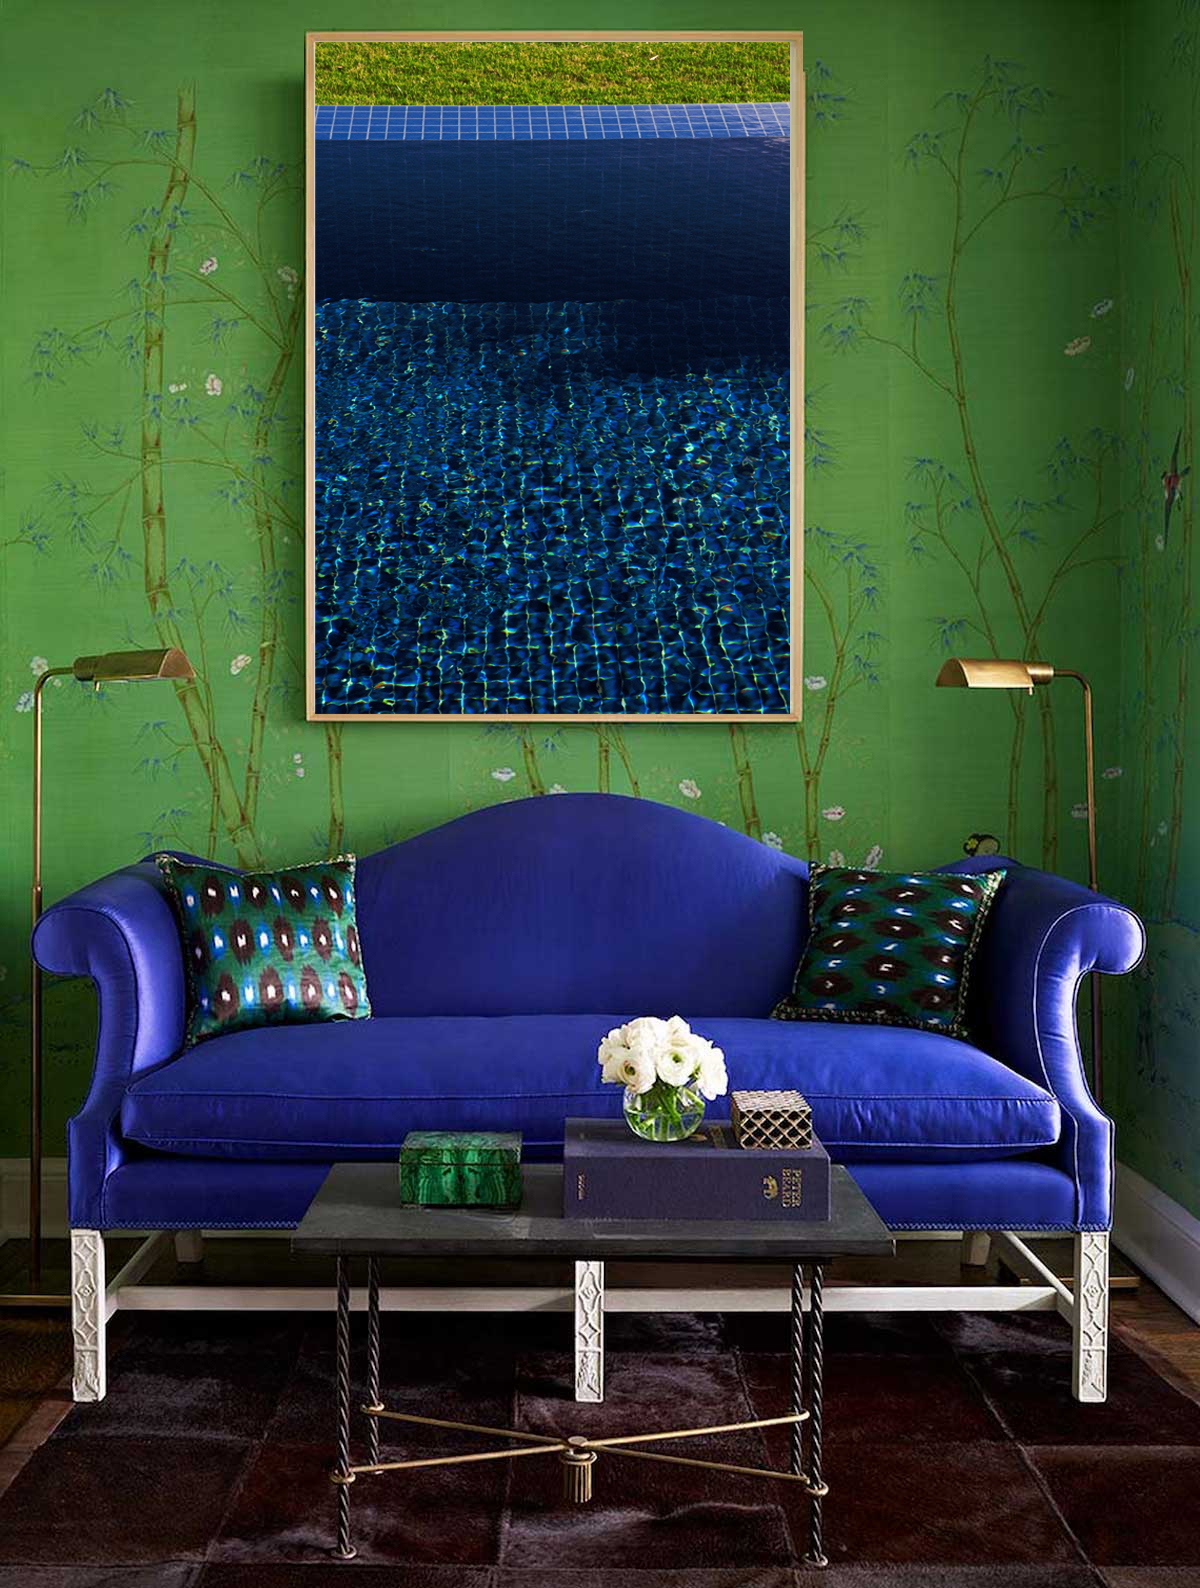 Green and blue room.jpg